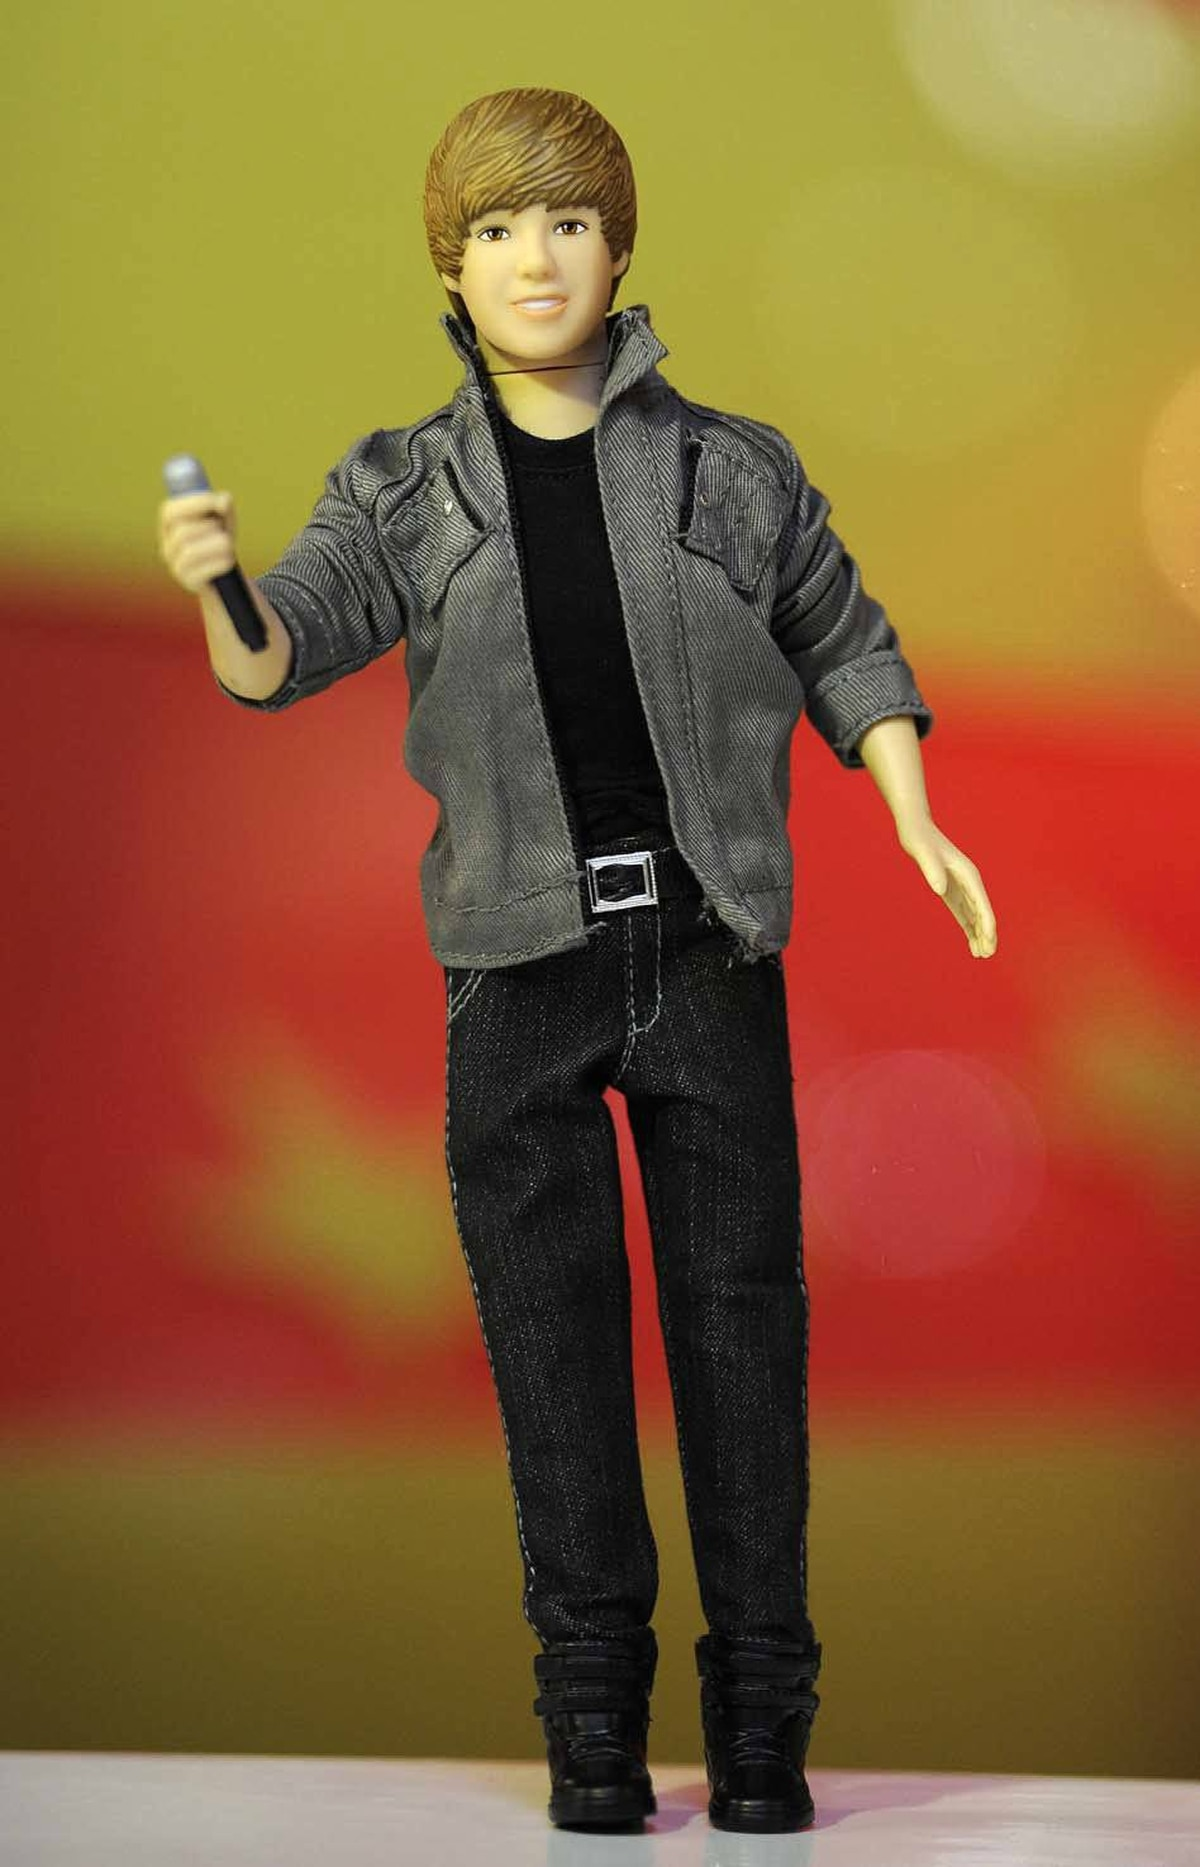 A Justin Bieber singing doll is seen at Hamleys toy store in London June 28, 2011. The Regents Street store unveiled its predictions as best sellers for the Christmas season at a media event on Tuesday.